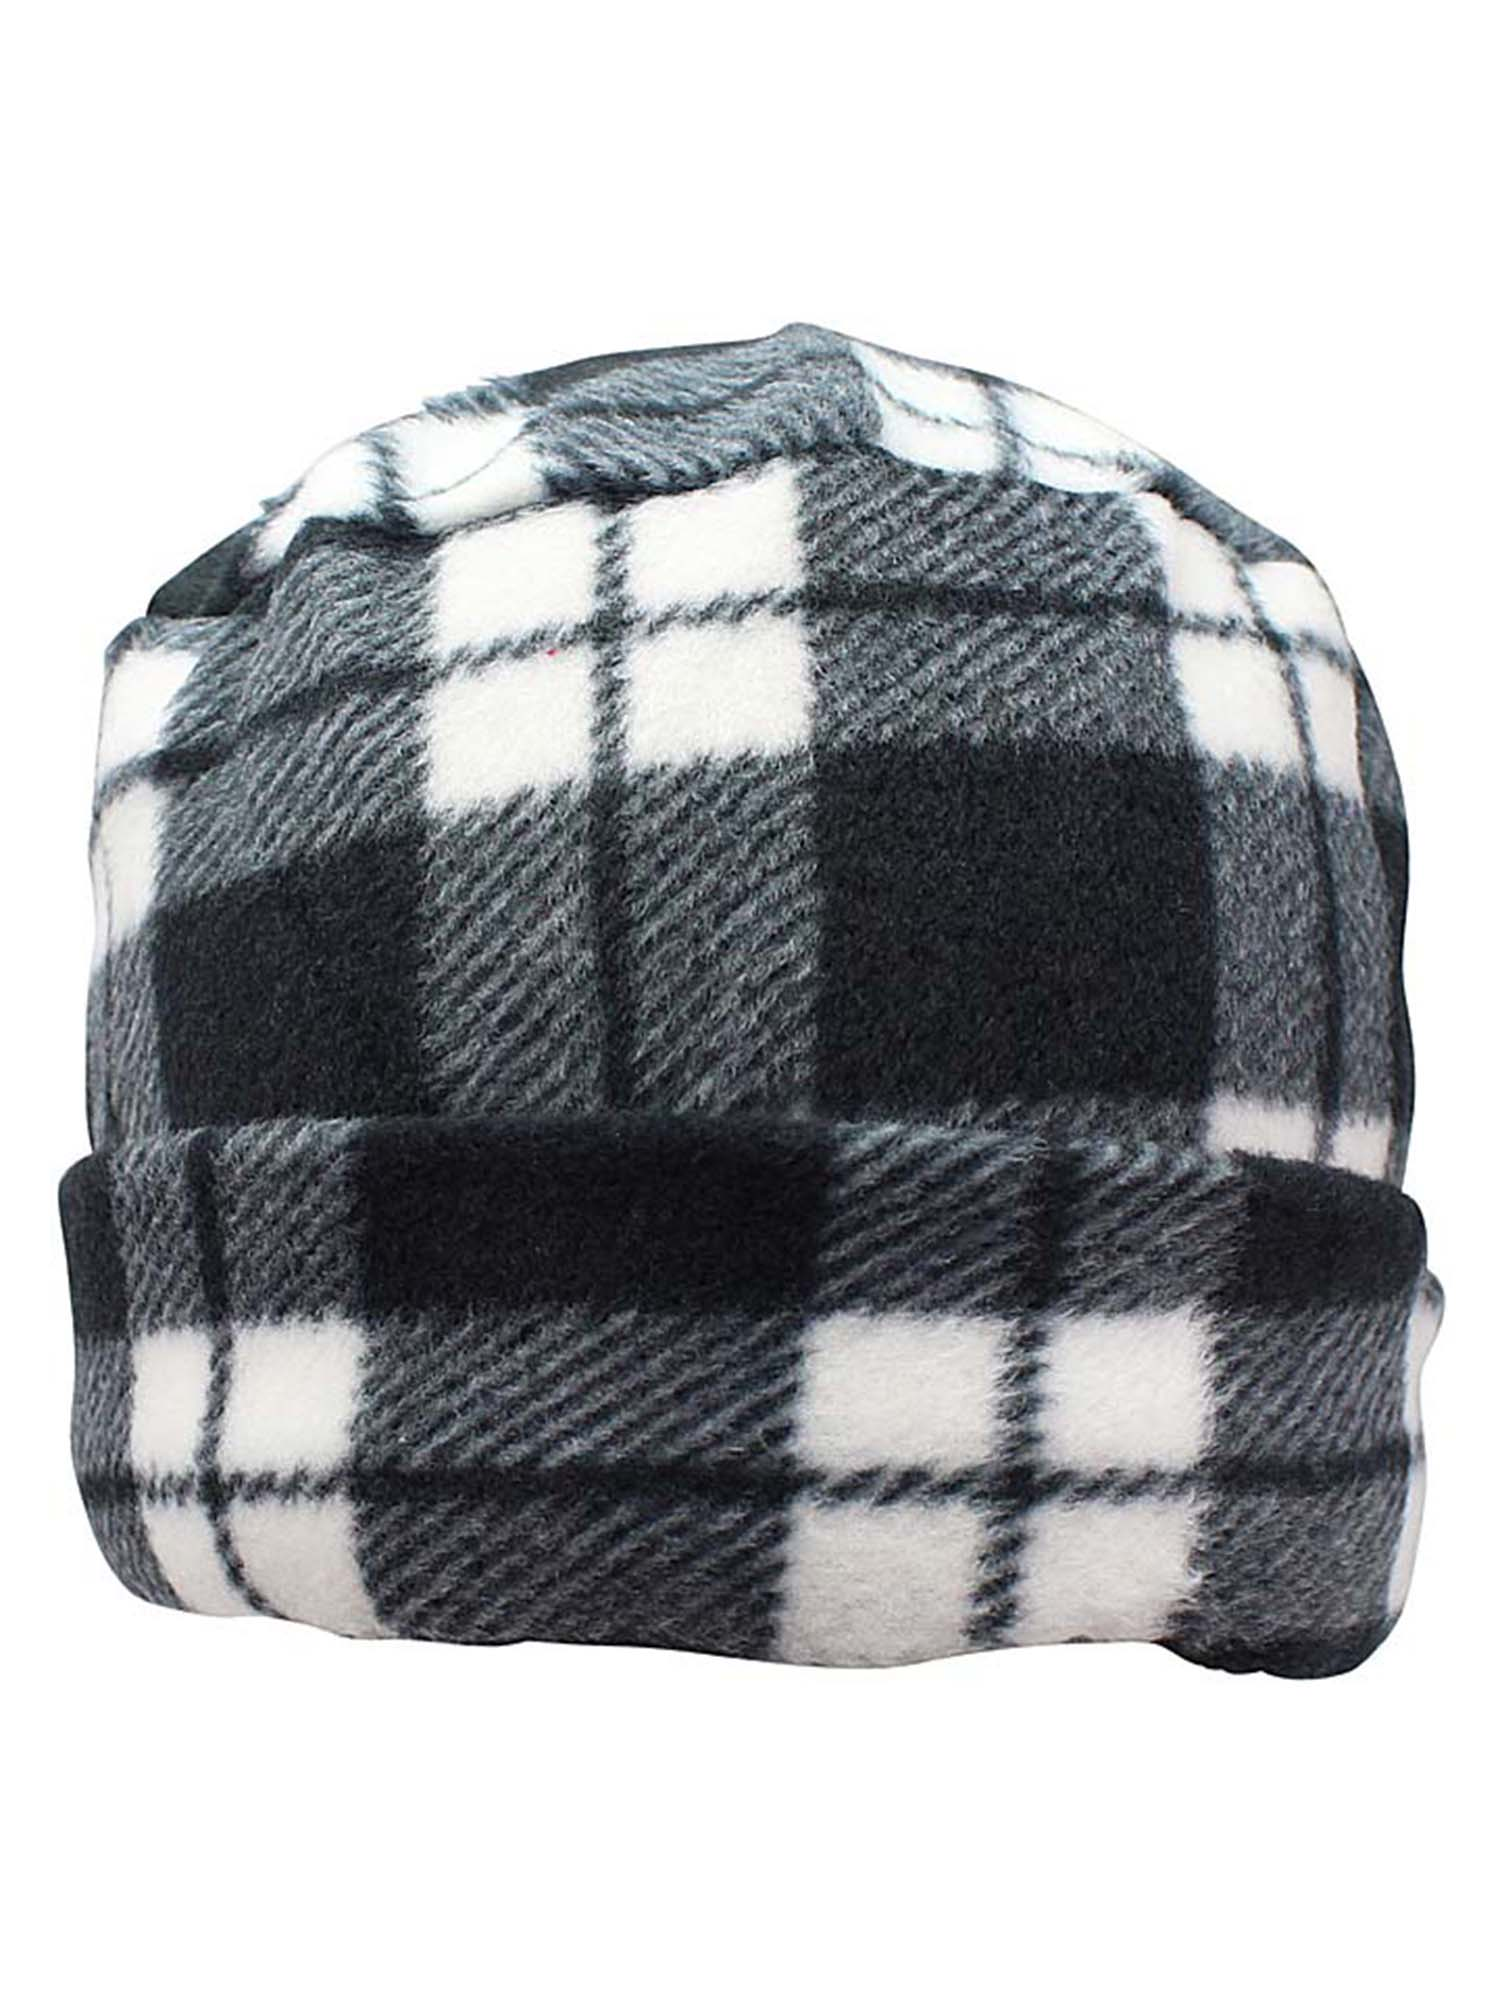 Black & White Plaid Fleece 3-Piece Hat Scarf & Gloves Matching Set